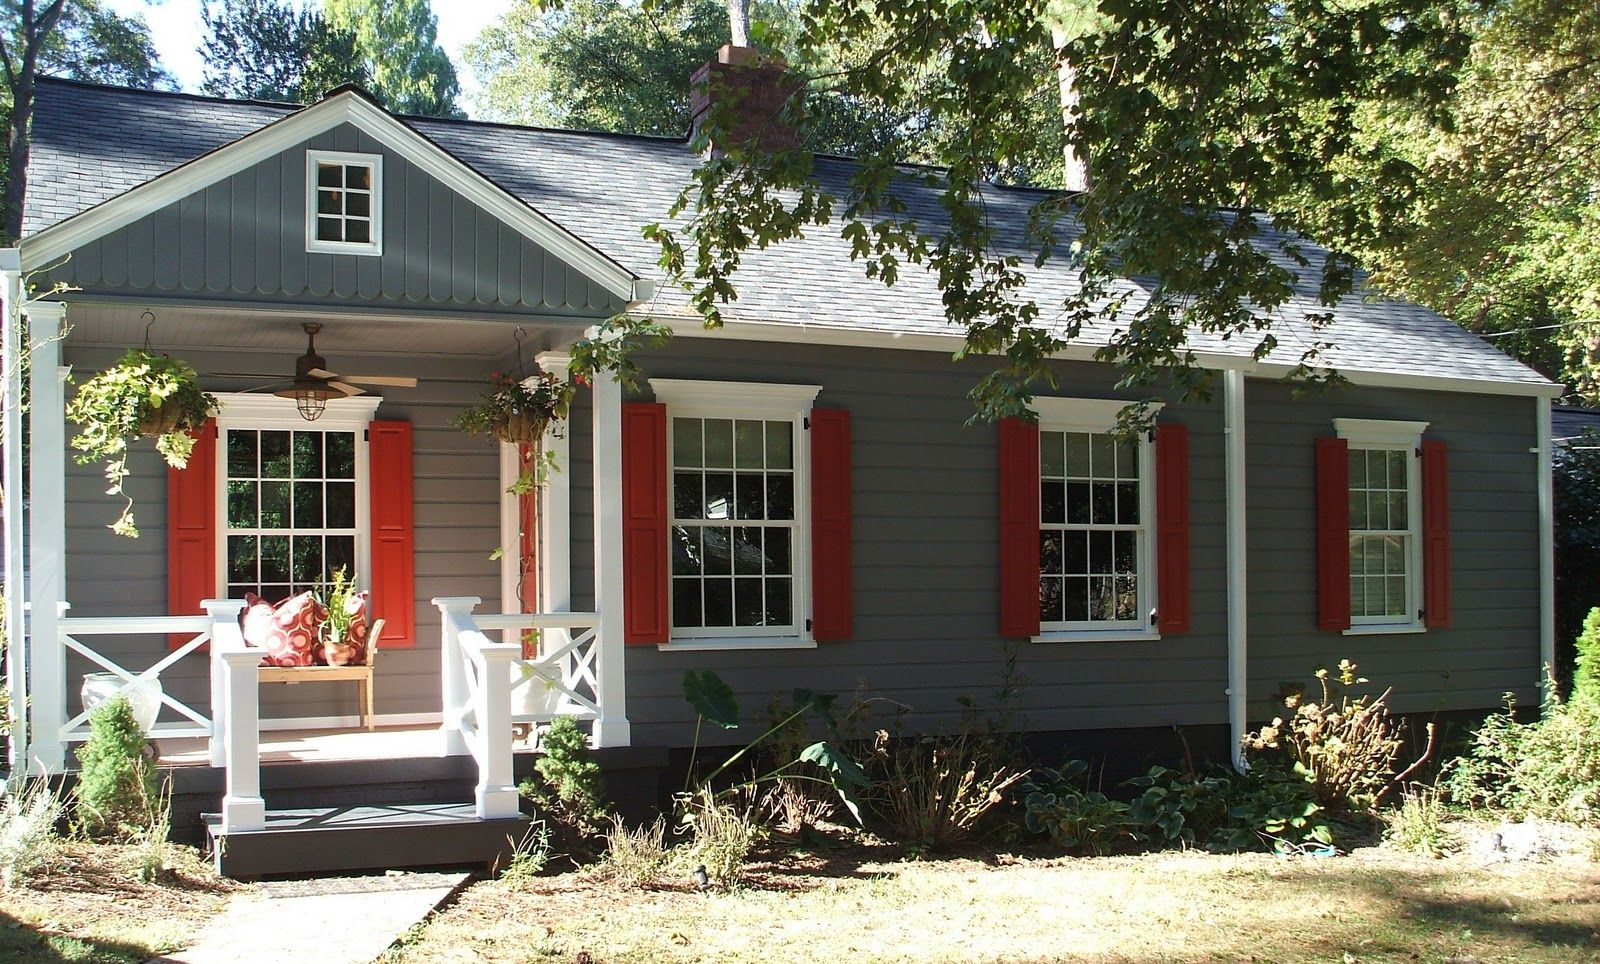 Exterior house color schemes with black shutters - Cabin Exterior Paint Schemes Exterior Paint Color Suggestions For Modern Mountain Home Young